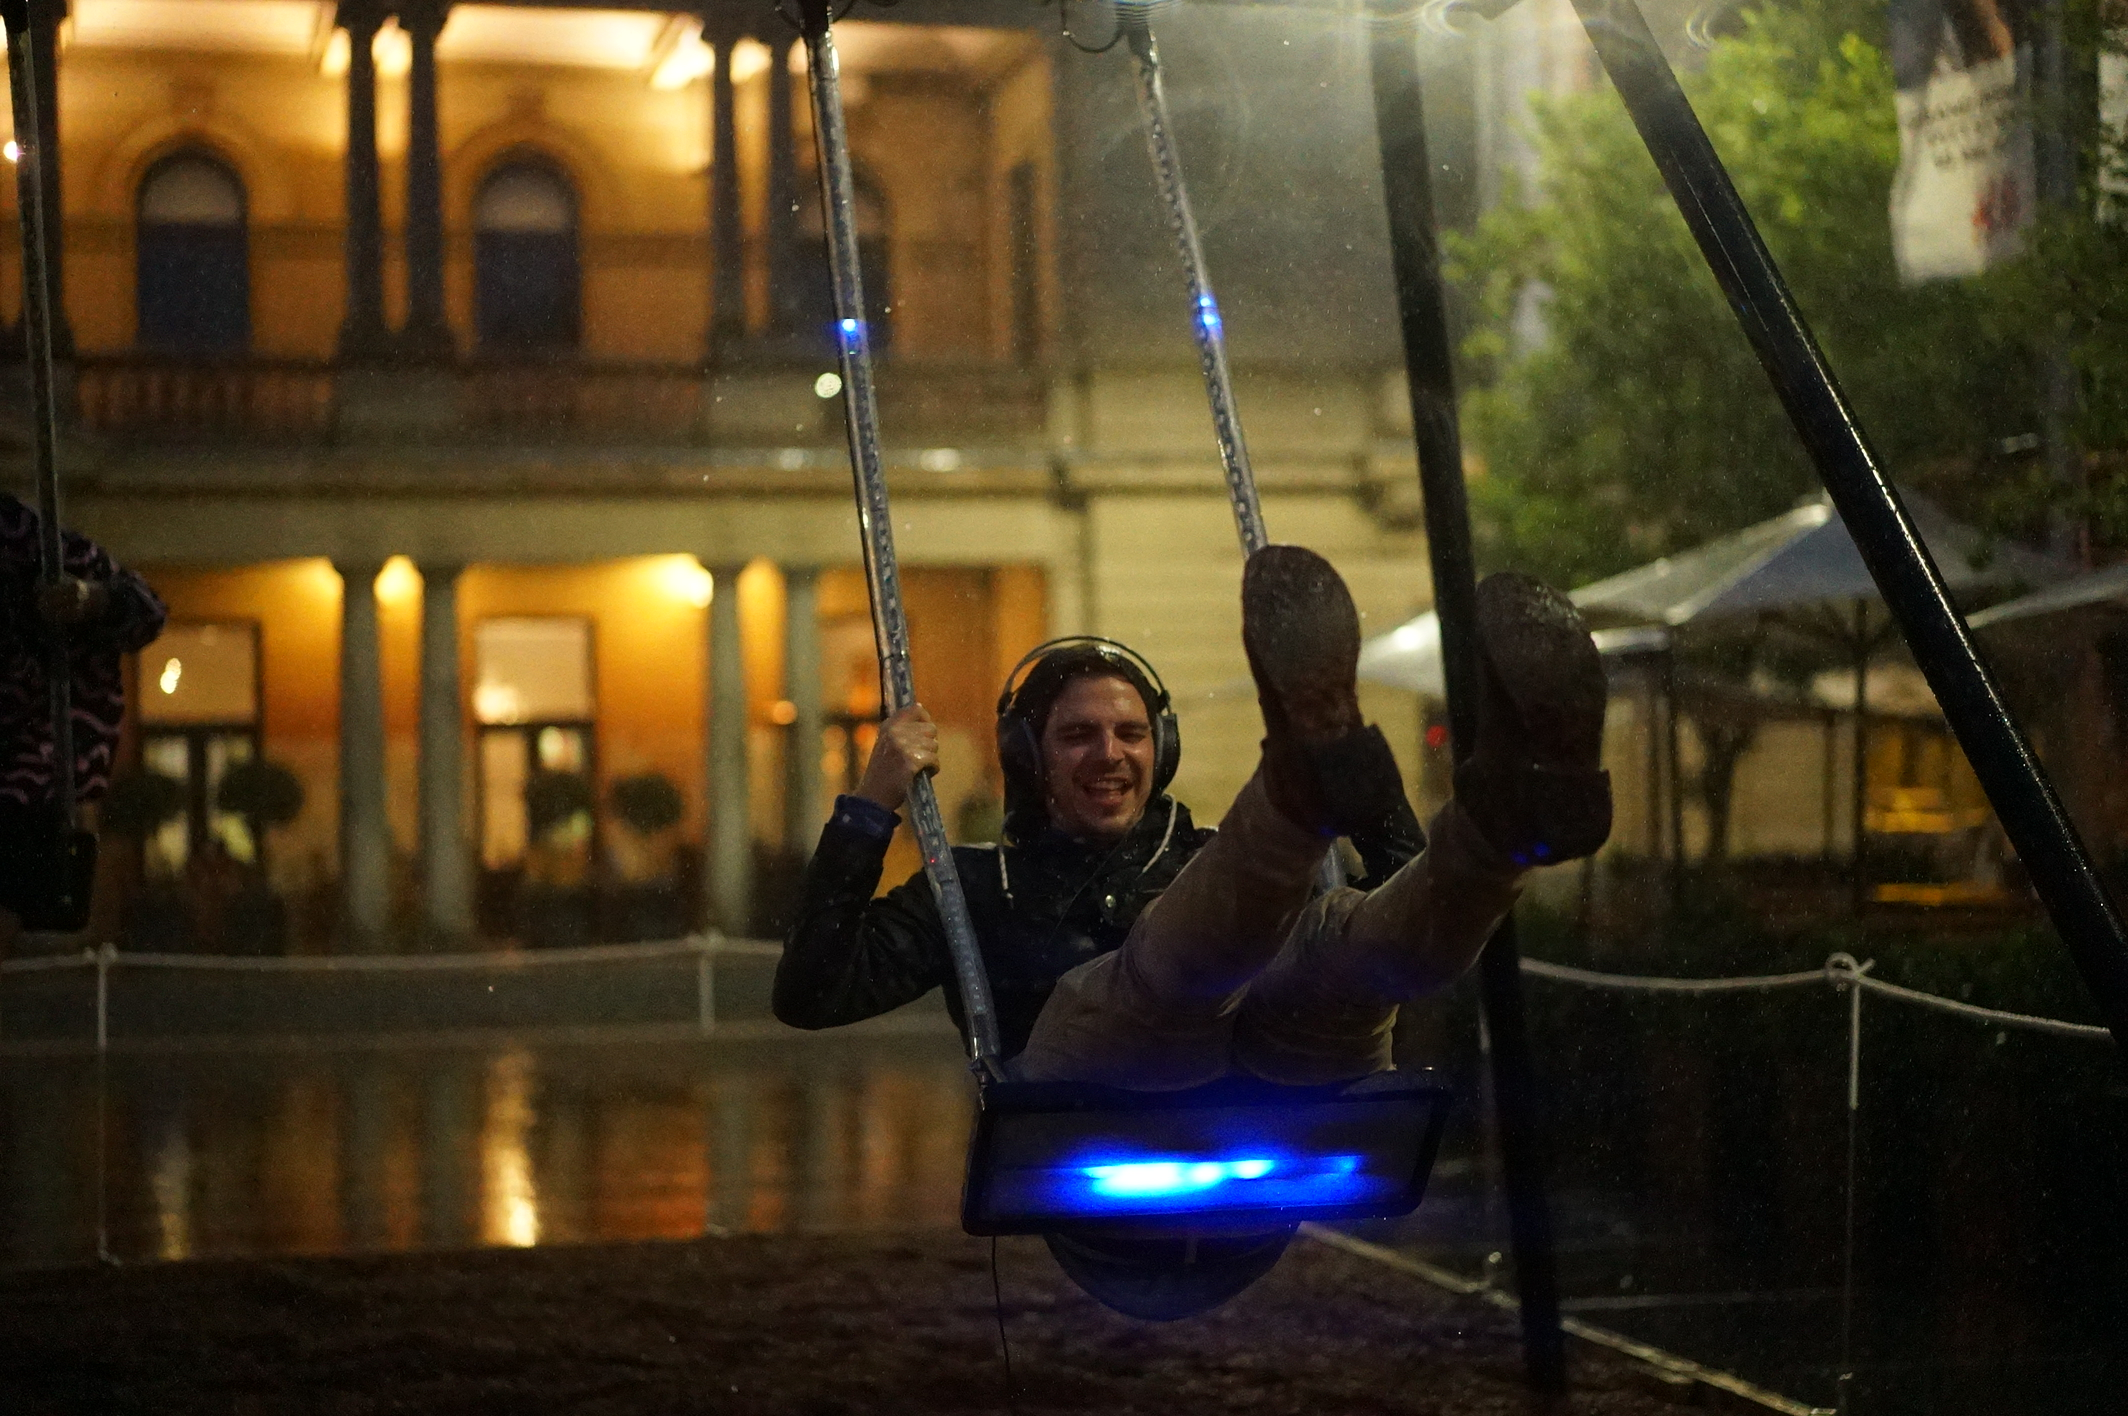 Person on Infinity swing.